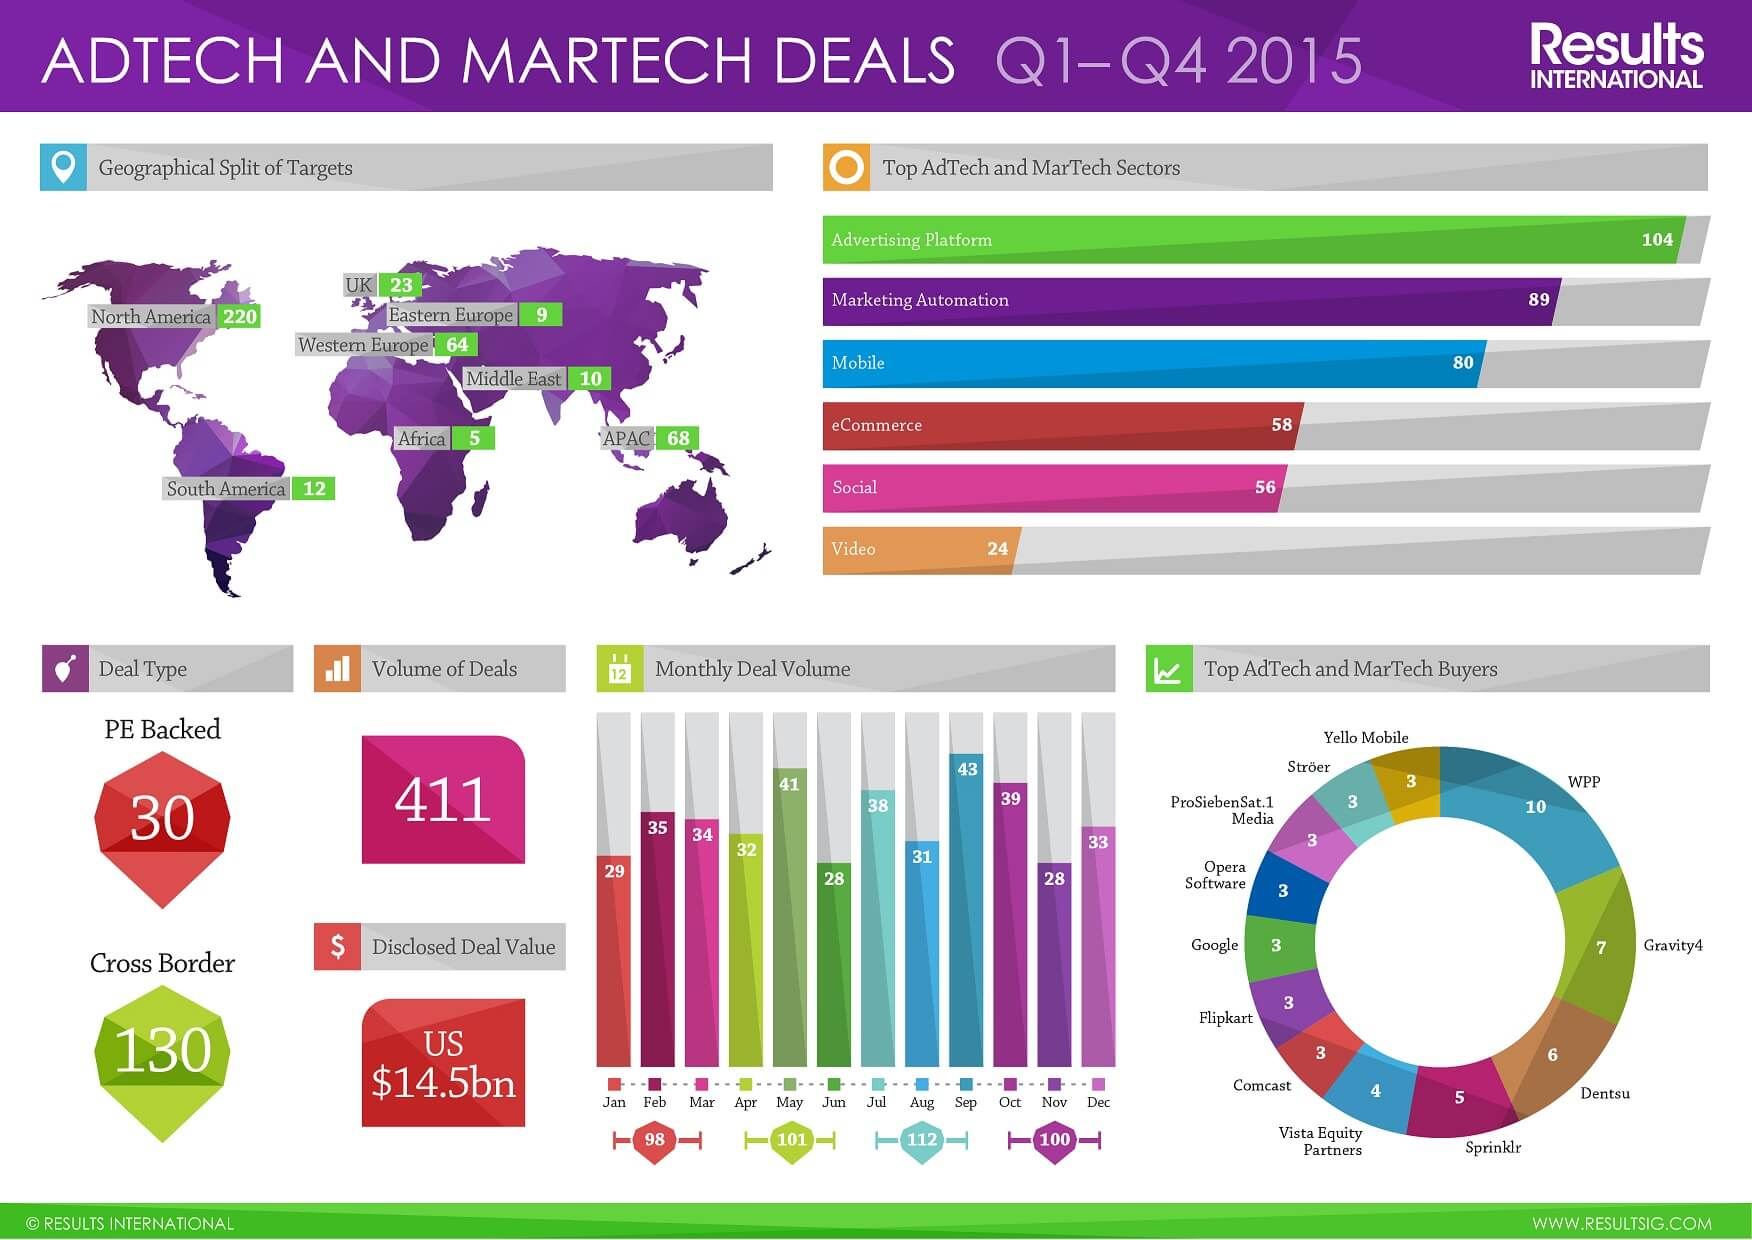 Adtech and Martech Deals Q1-Q4 2015.ai